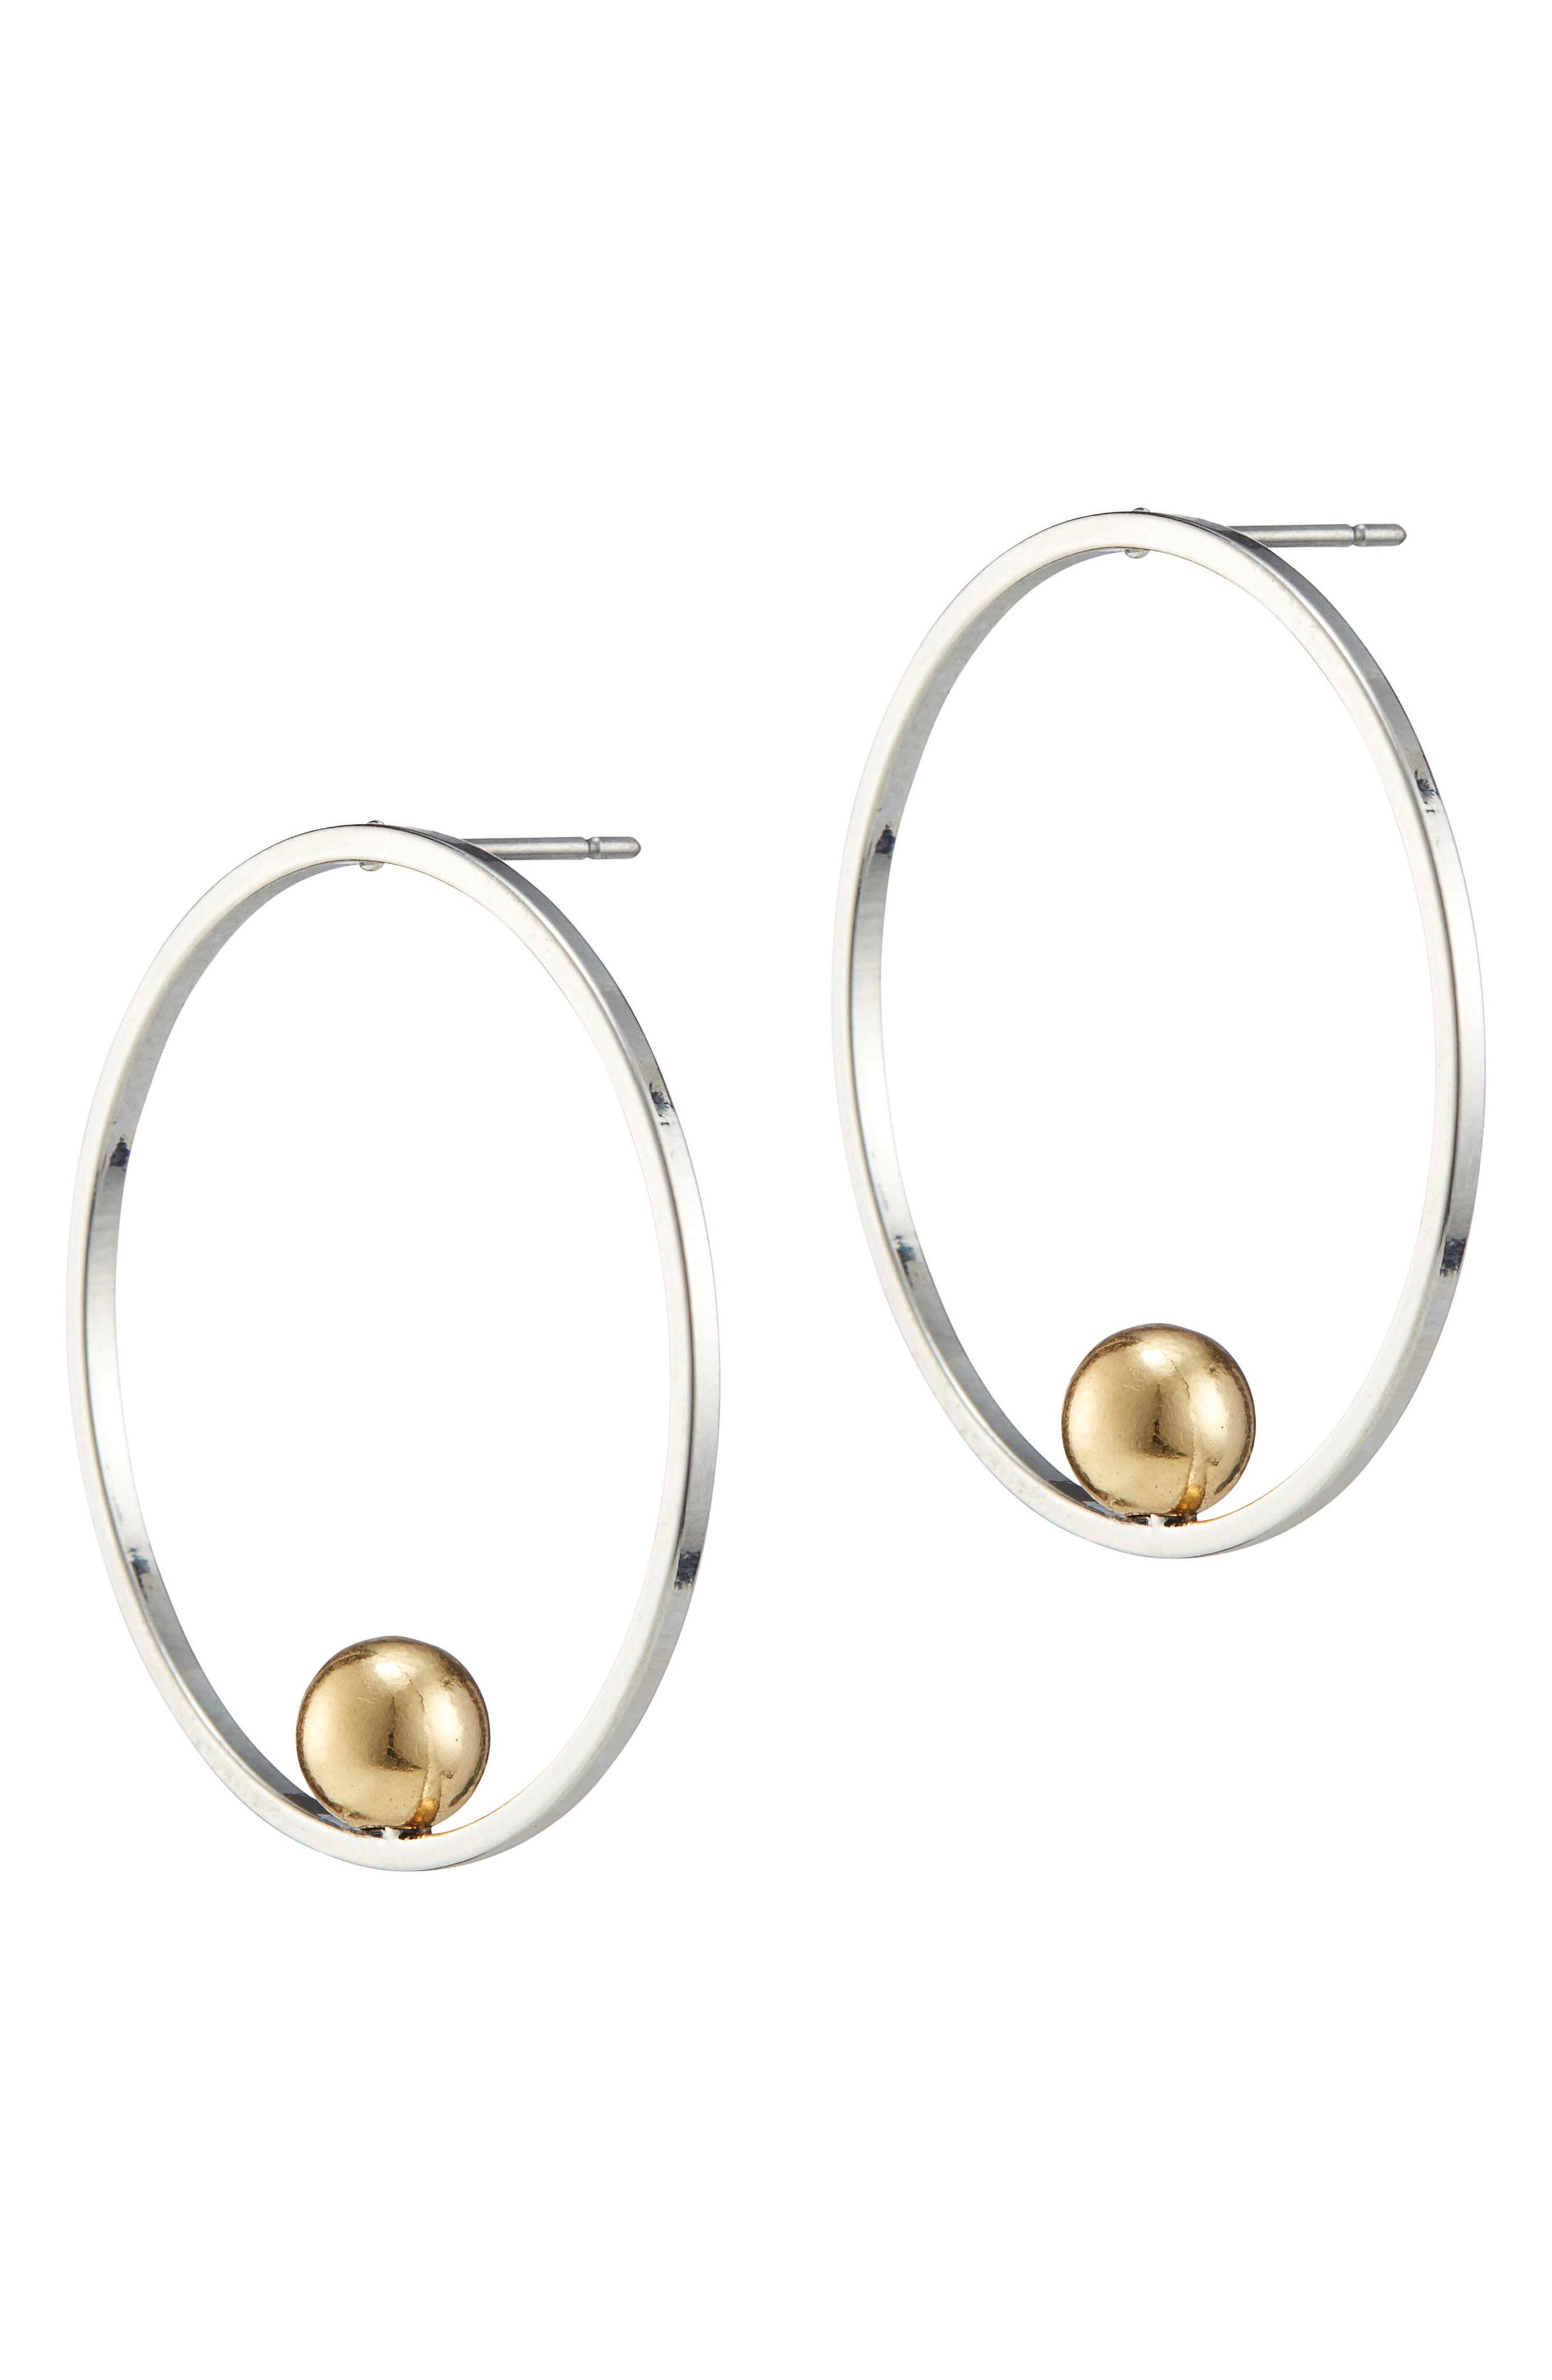 Saros Hoop Earrings,                             Main thumbnail 1, color,                             040